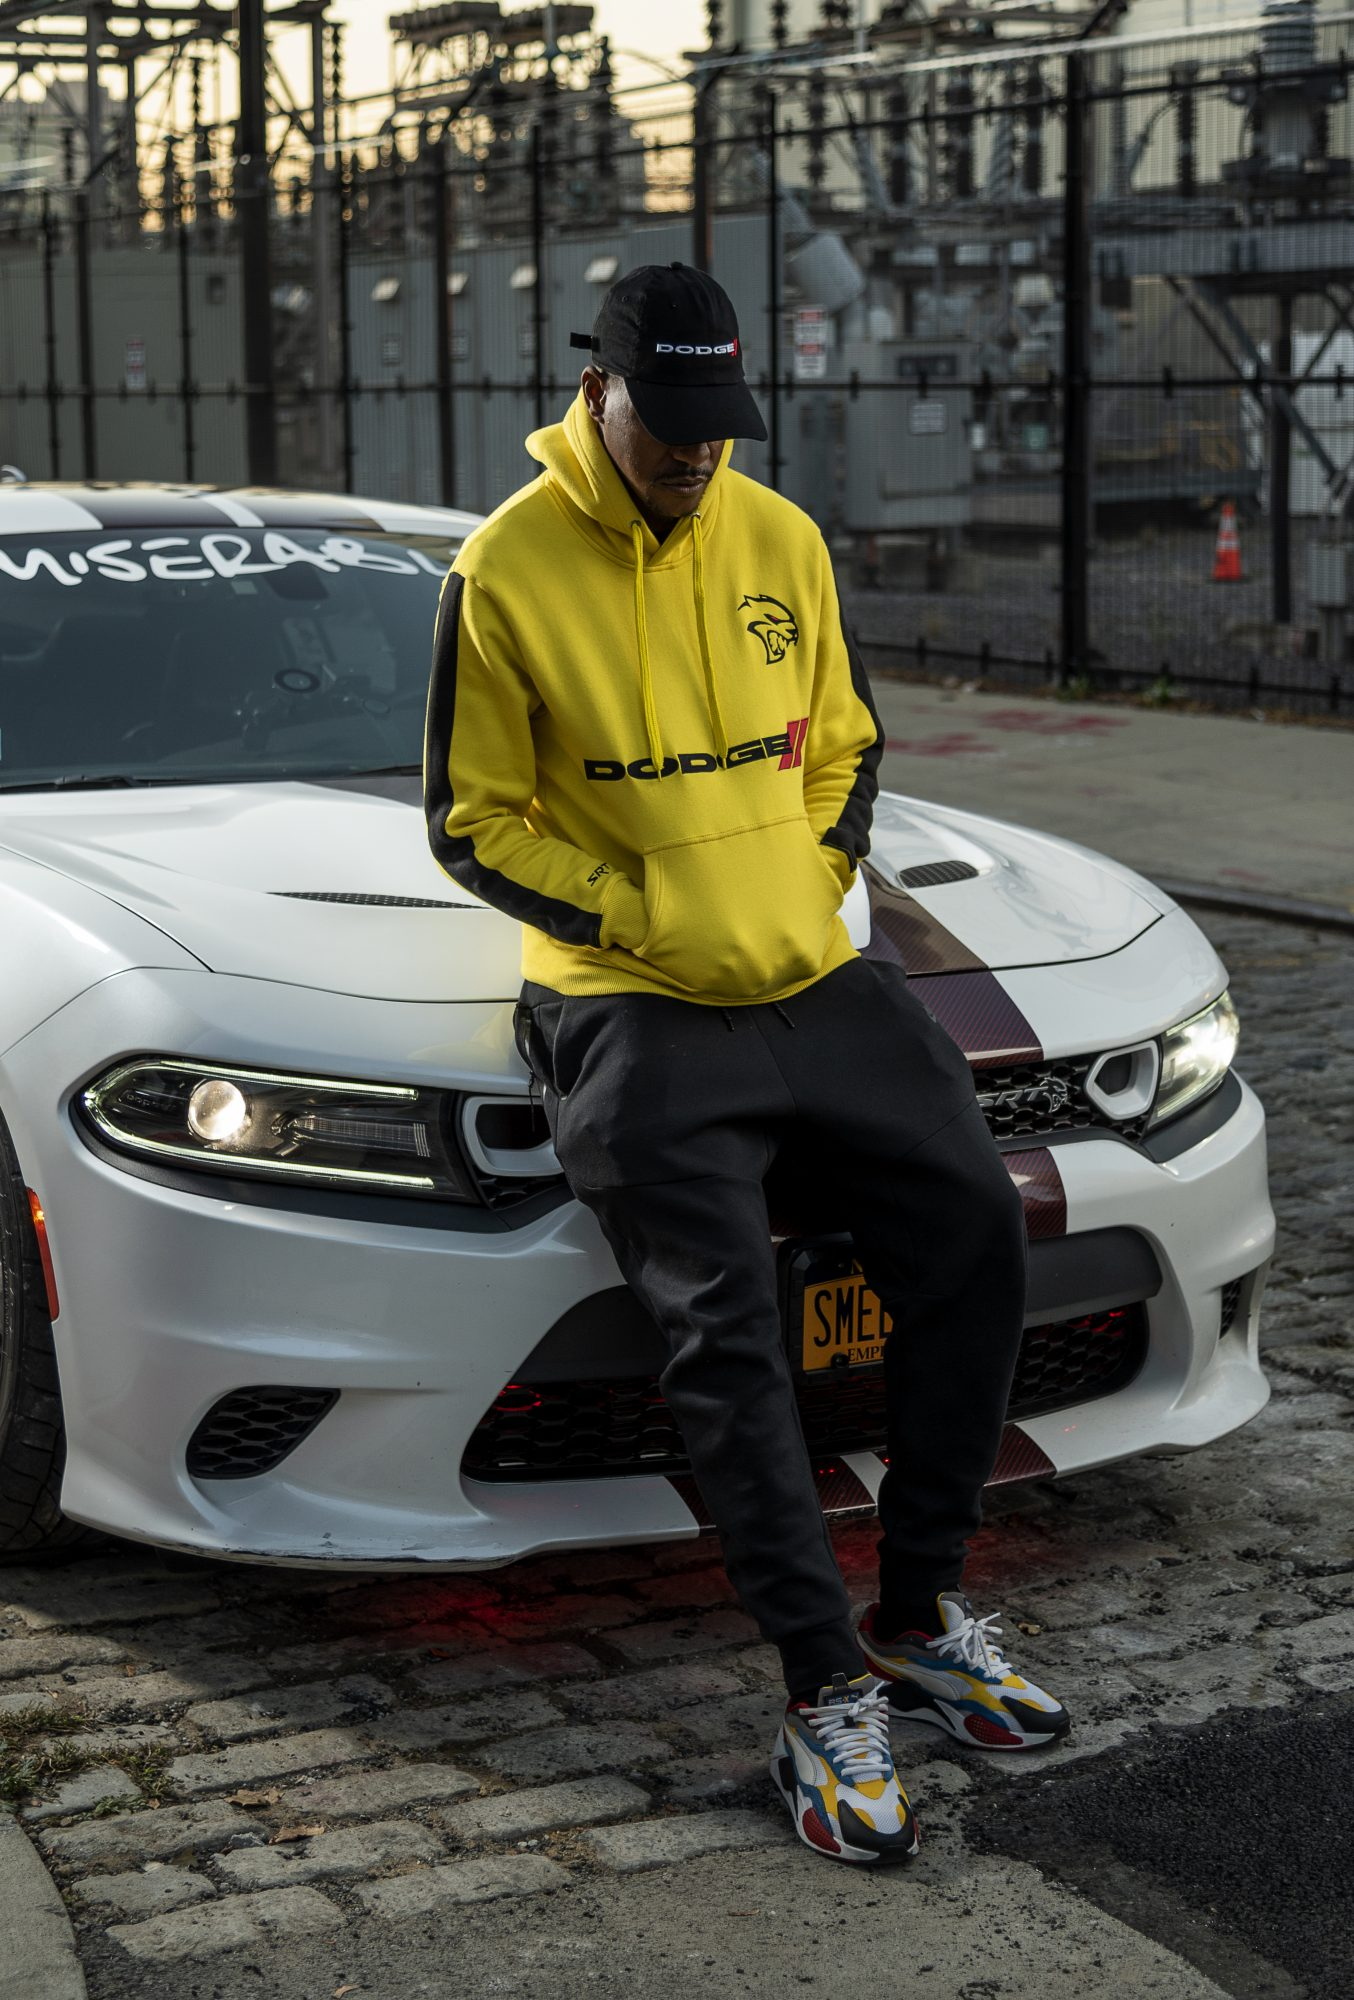 man wearing Dodge hoodie sitting on a Dodge Charger